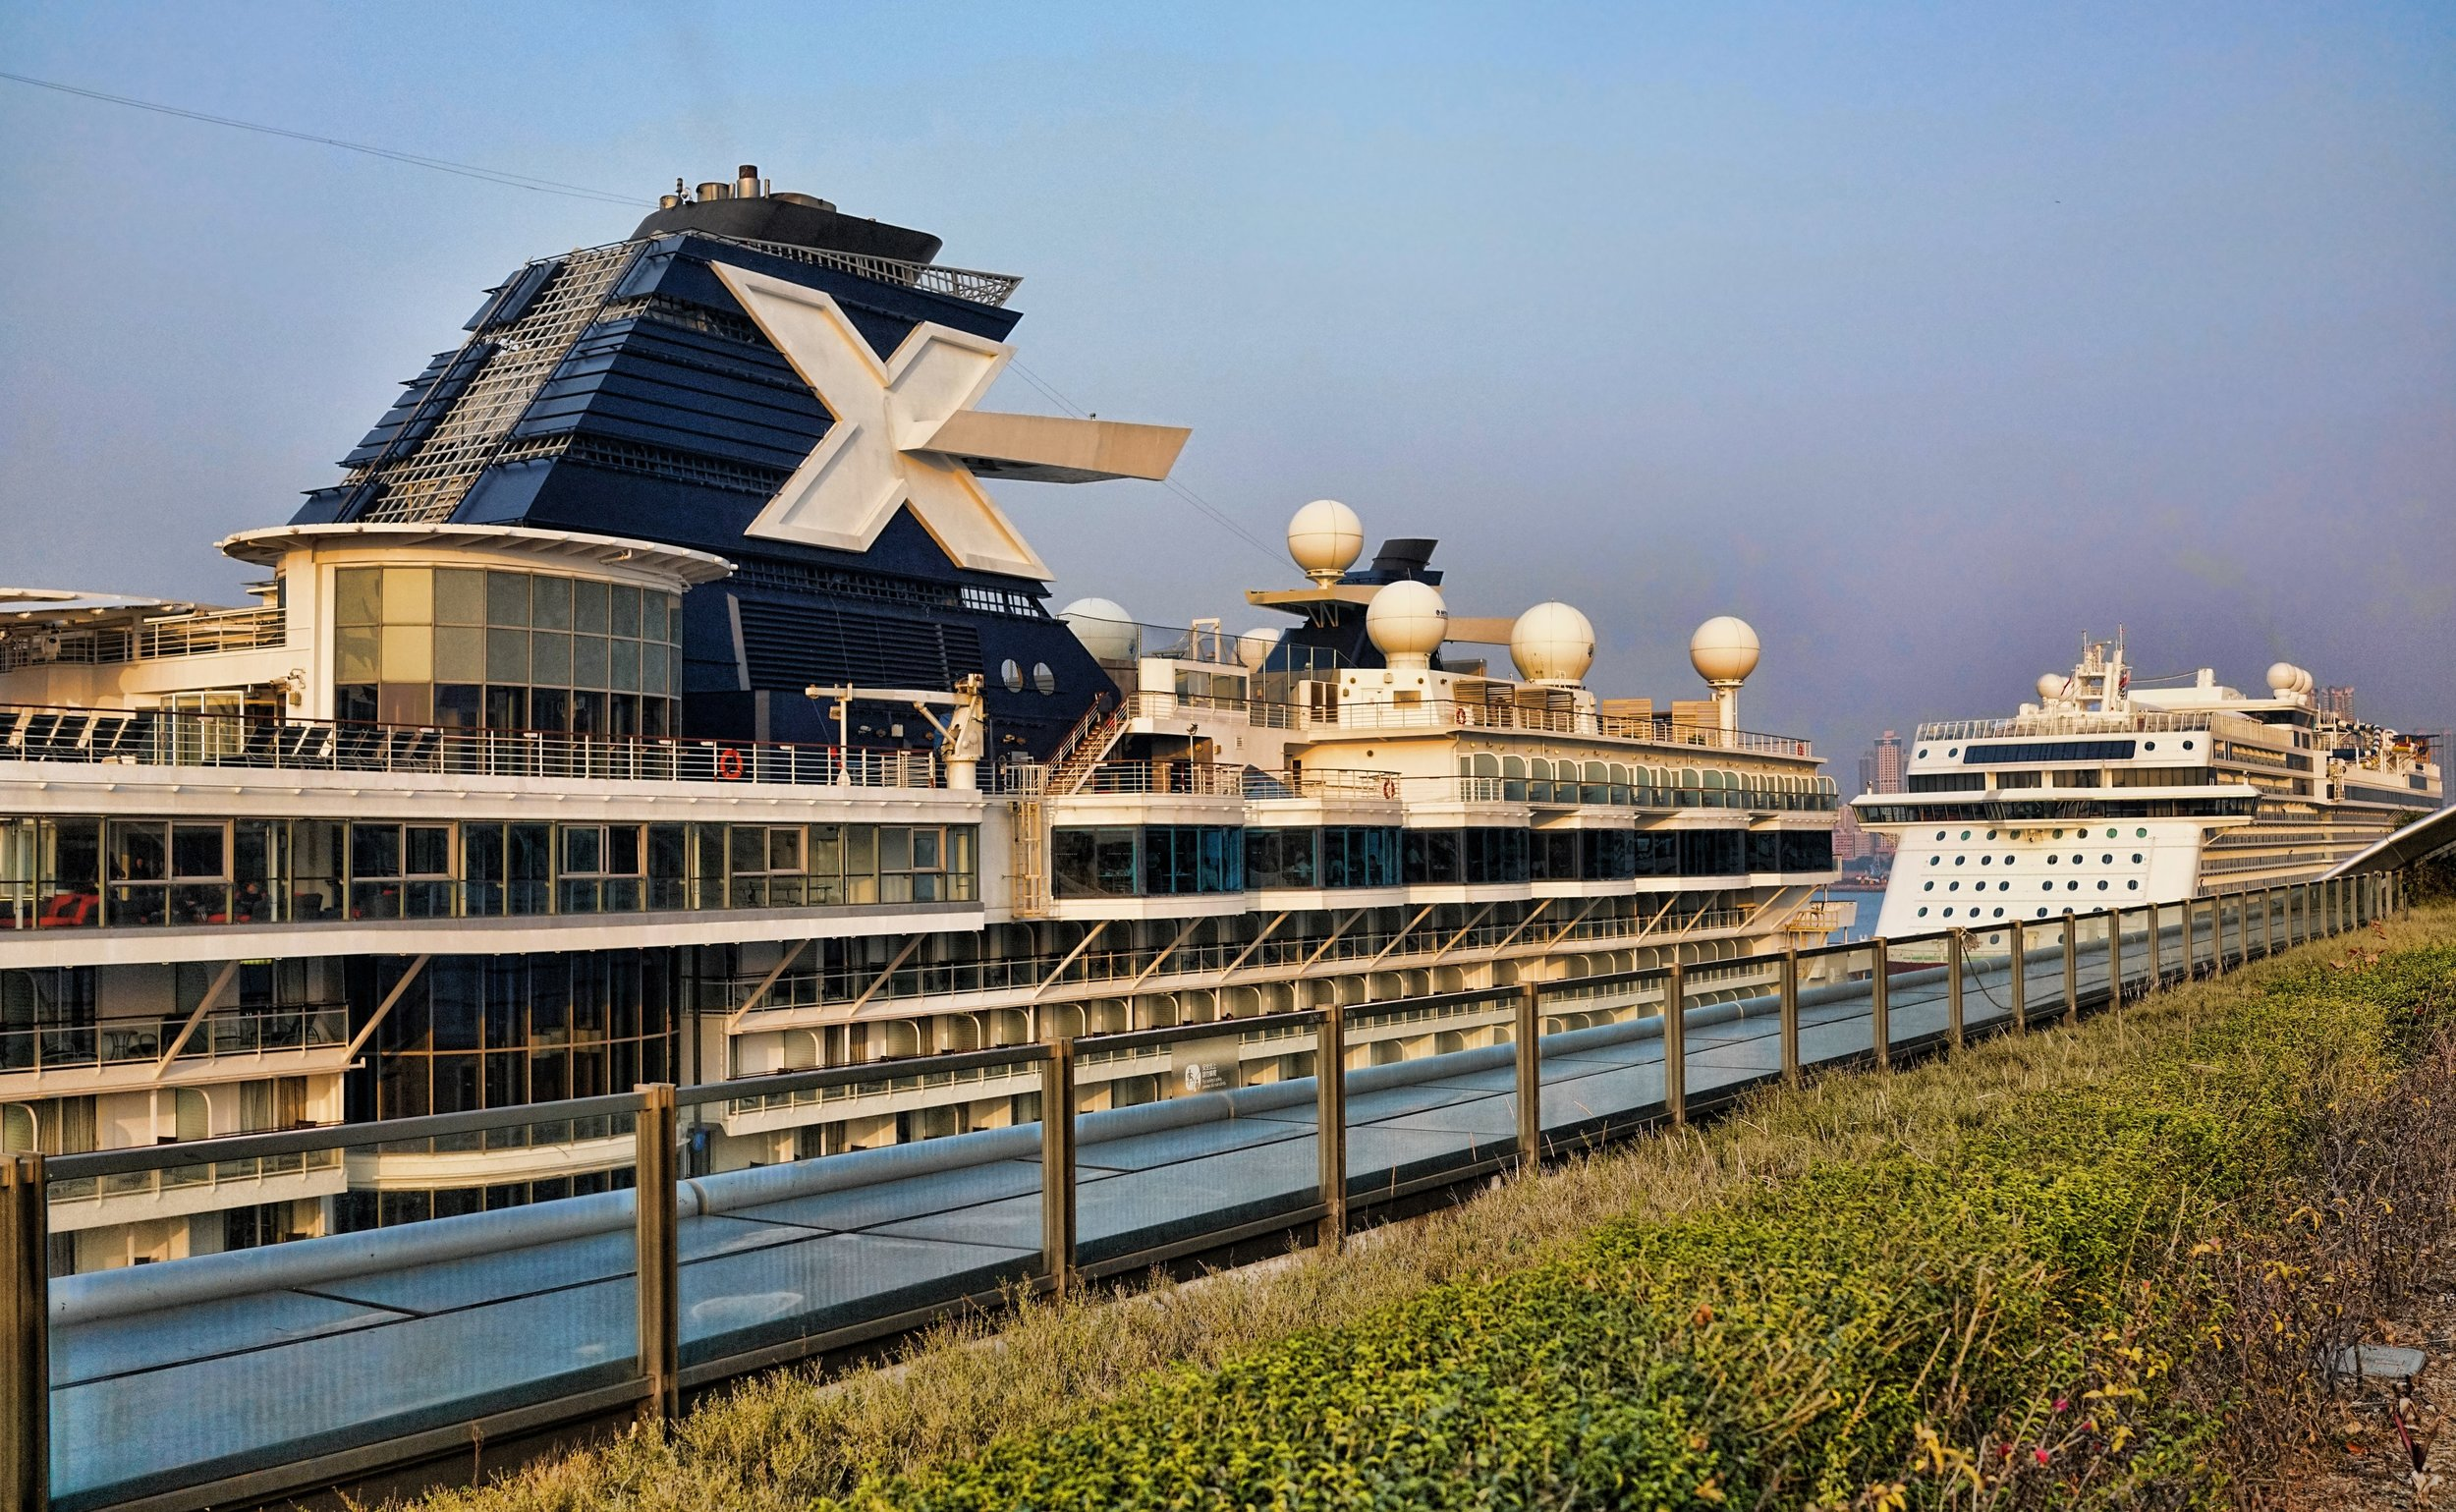 I will pick you up at the Cruise Ship Terminal | I will make sure you get back to the Cruise Ship Terminal ON TIME. -